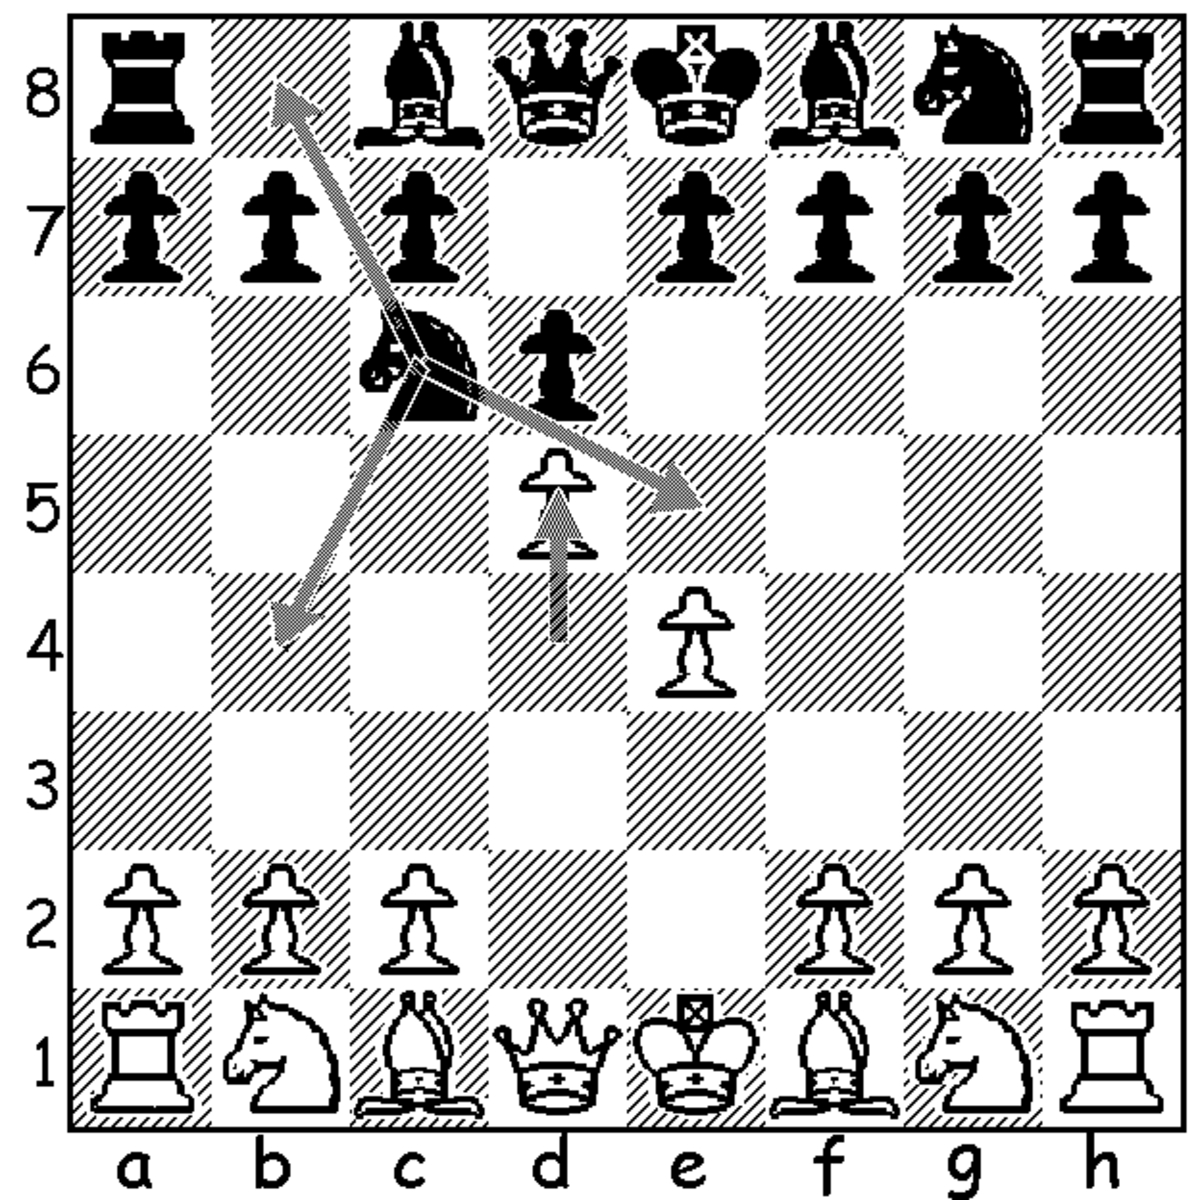 This diagram shows black's three reasonable third move options in response to 3.d5. In order of popularity, they are 3...Ne5, 3...Nb8, and 3...Nb4. I believe that 3...Nb8 may be more sound than 3...Ne5.